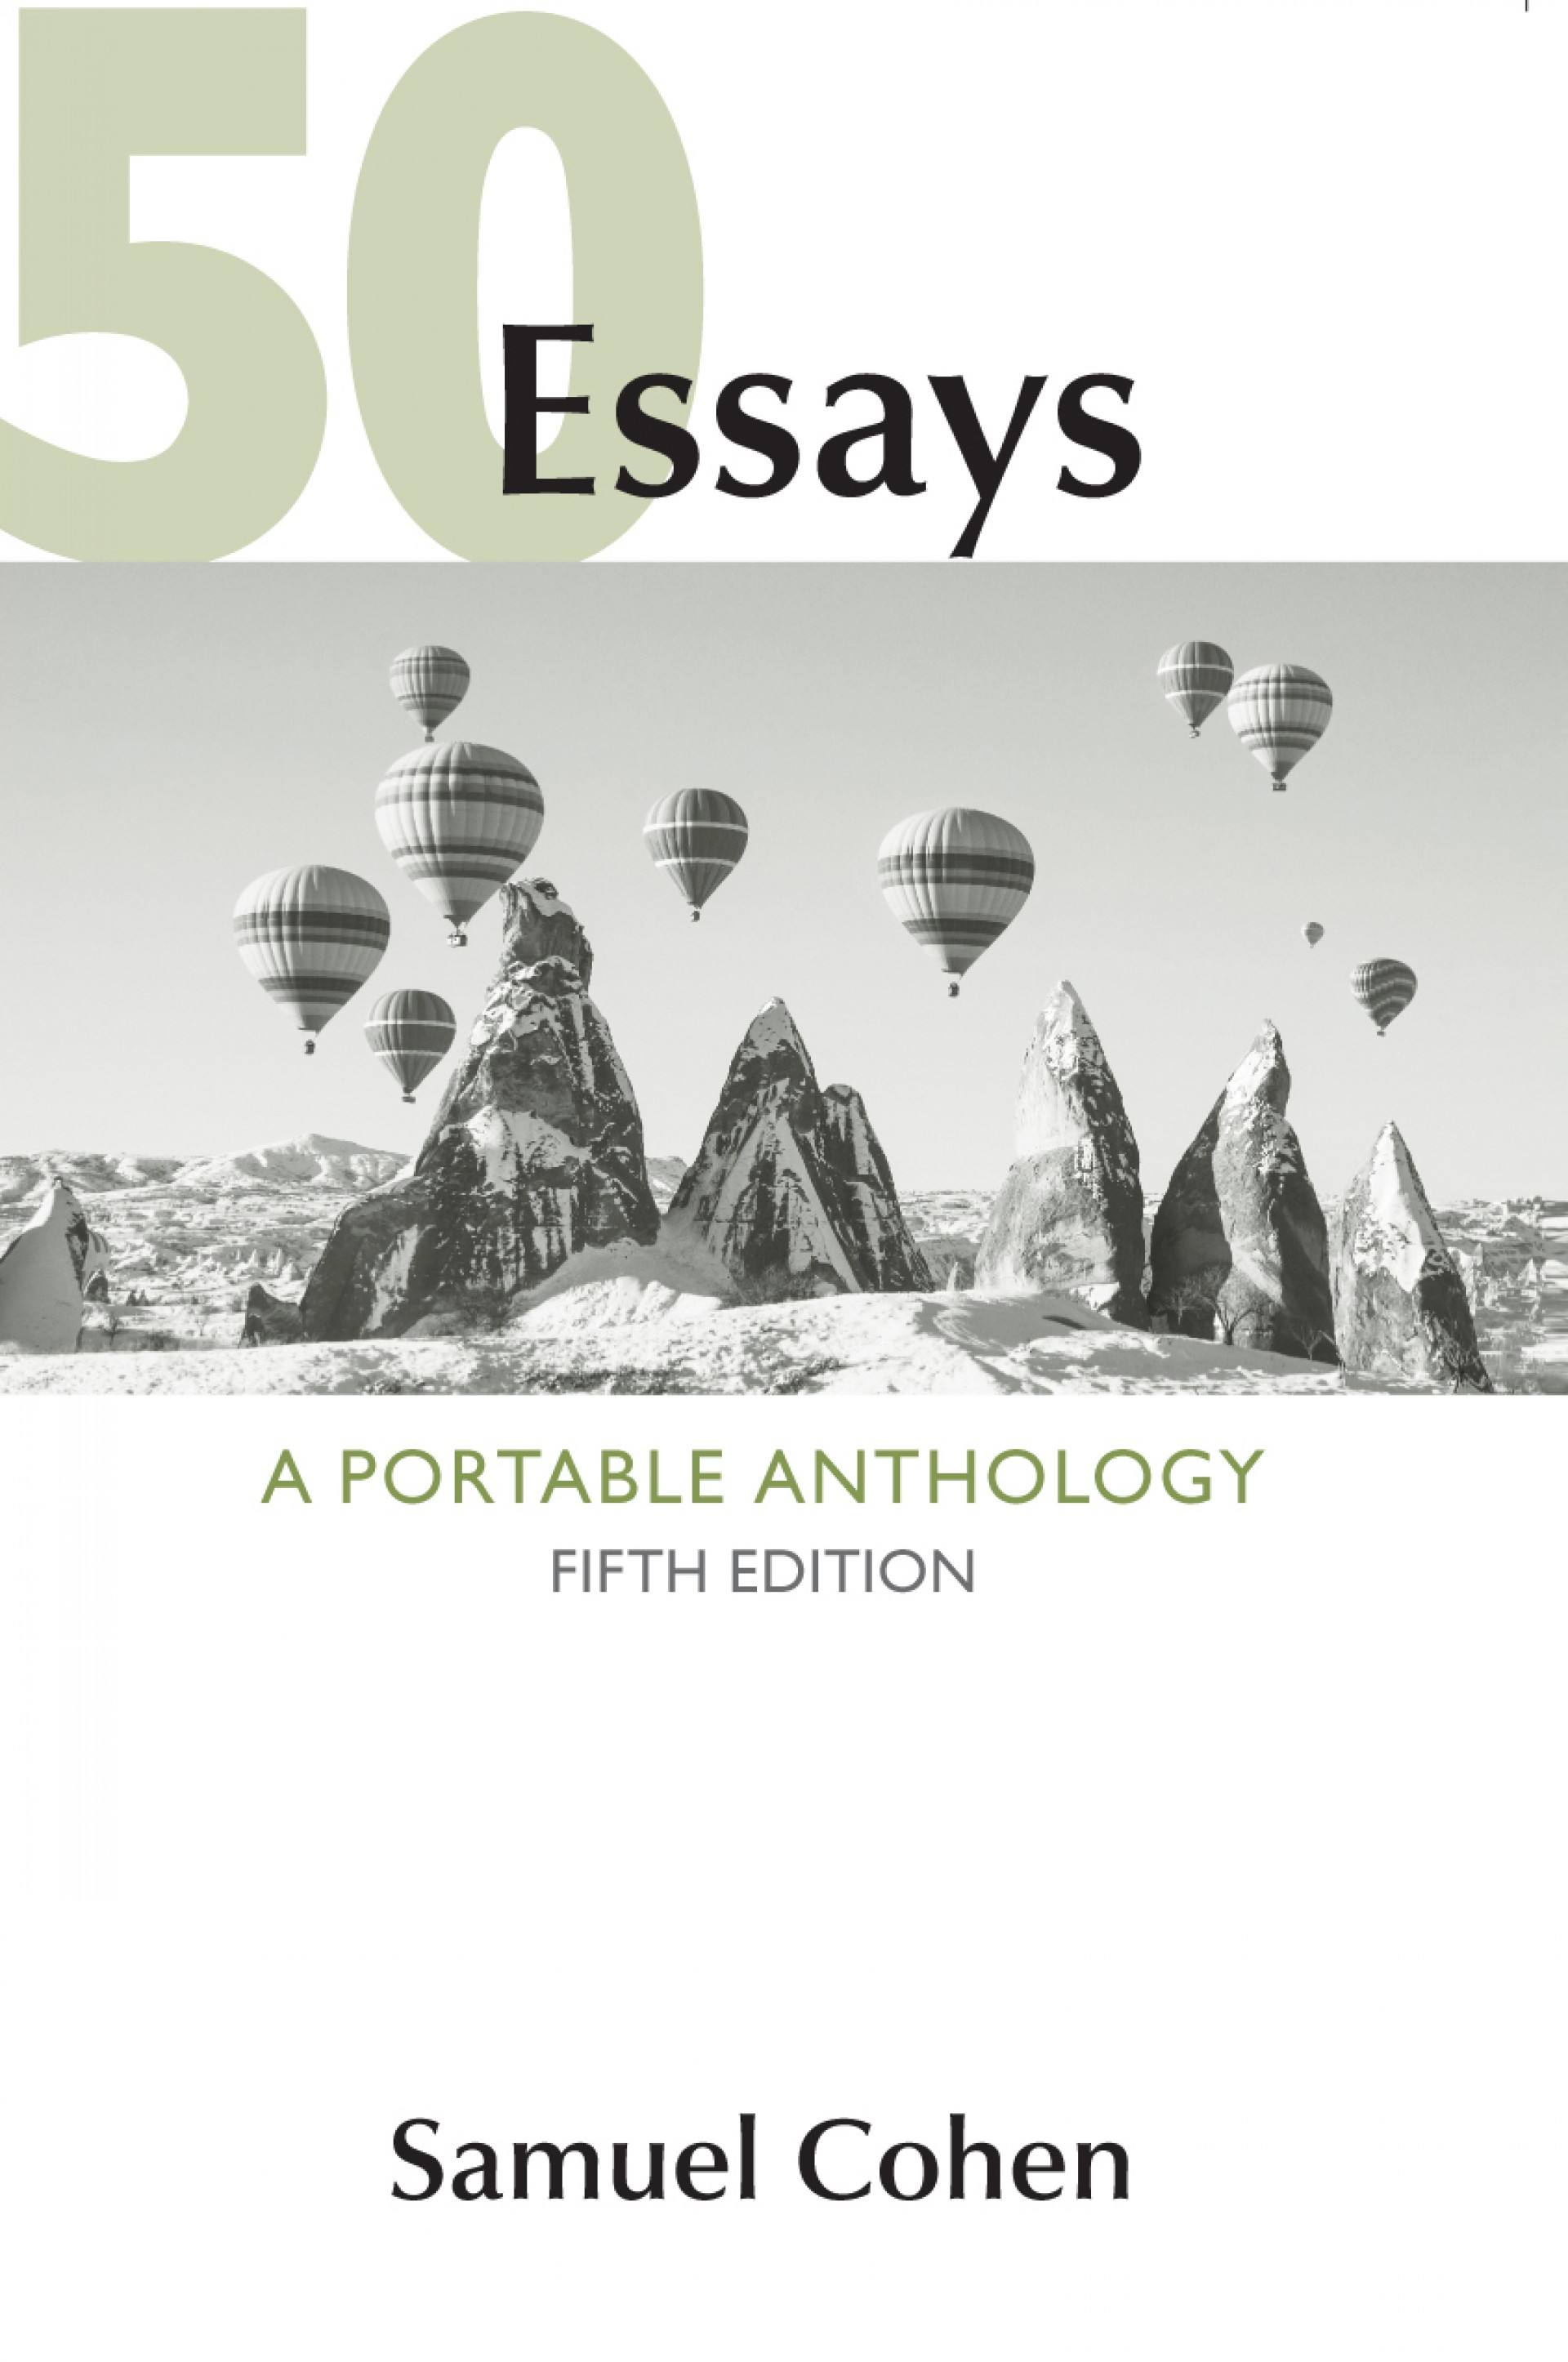 008 Essays Essay Example Shocking 50 A Portable Anthology 4th Edition Answers Pdf Free Samuel Cohen 1920